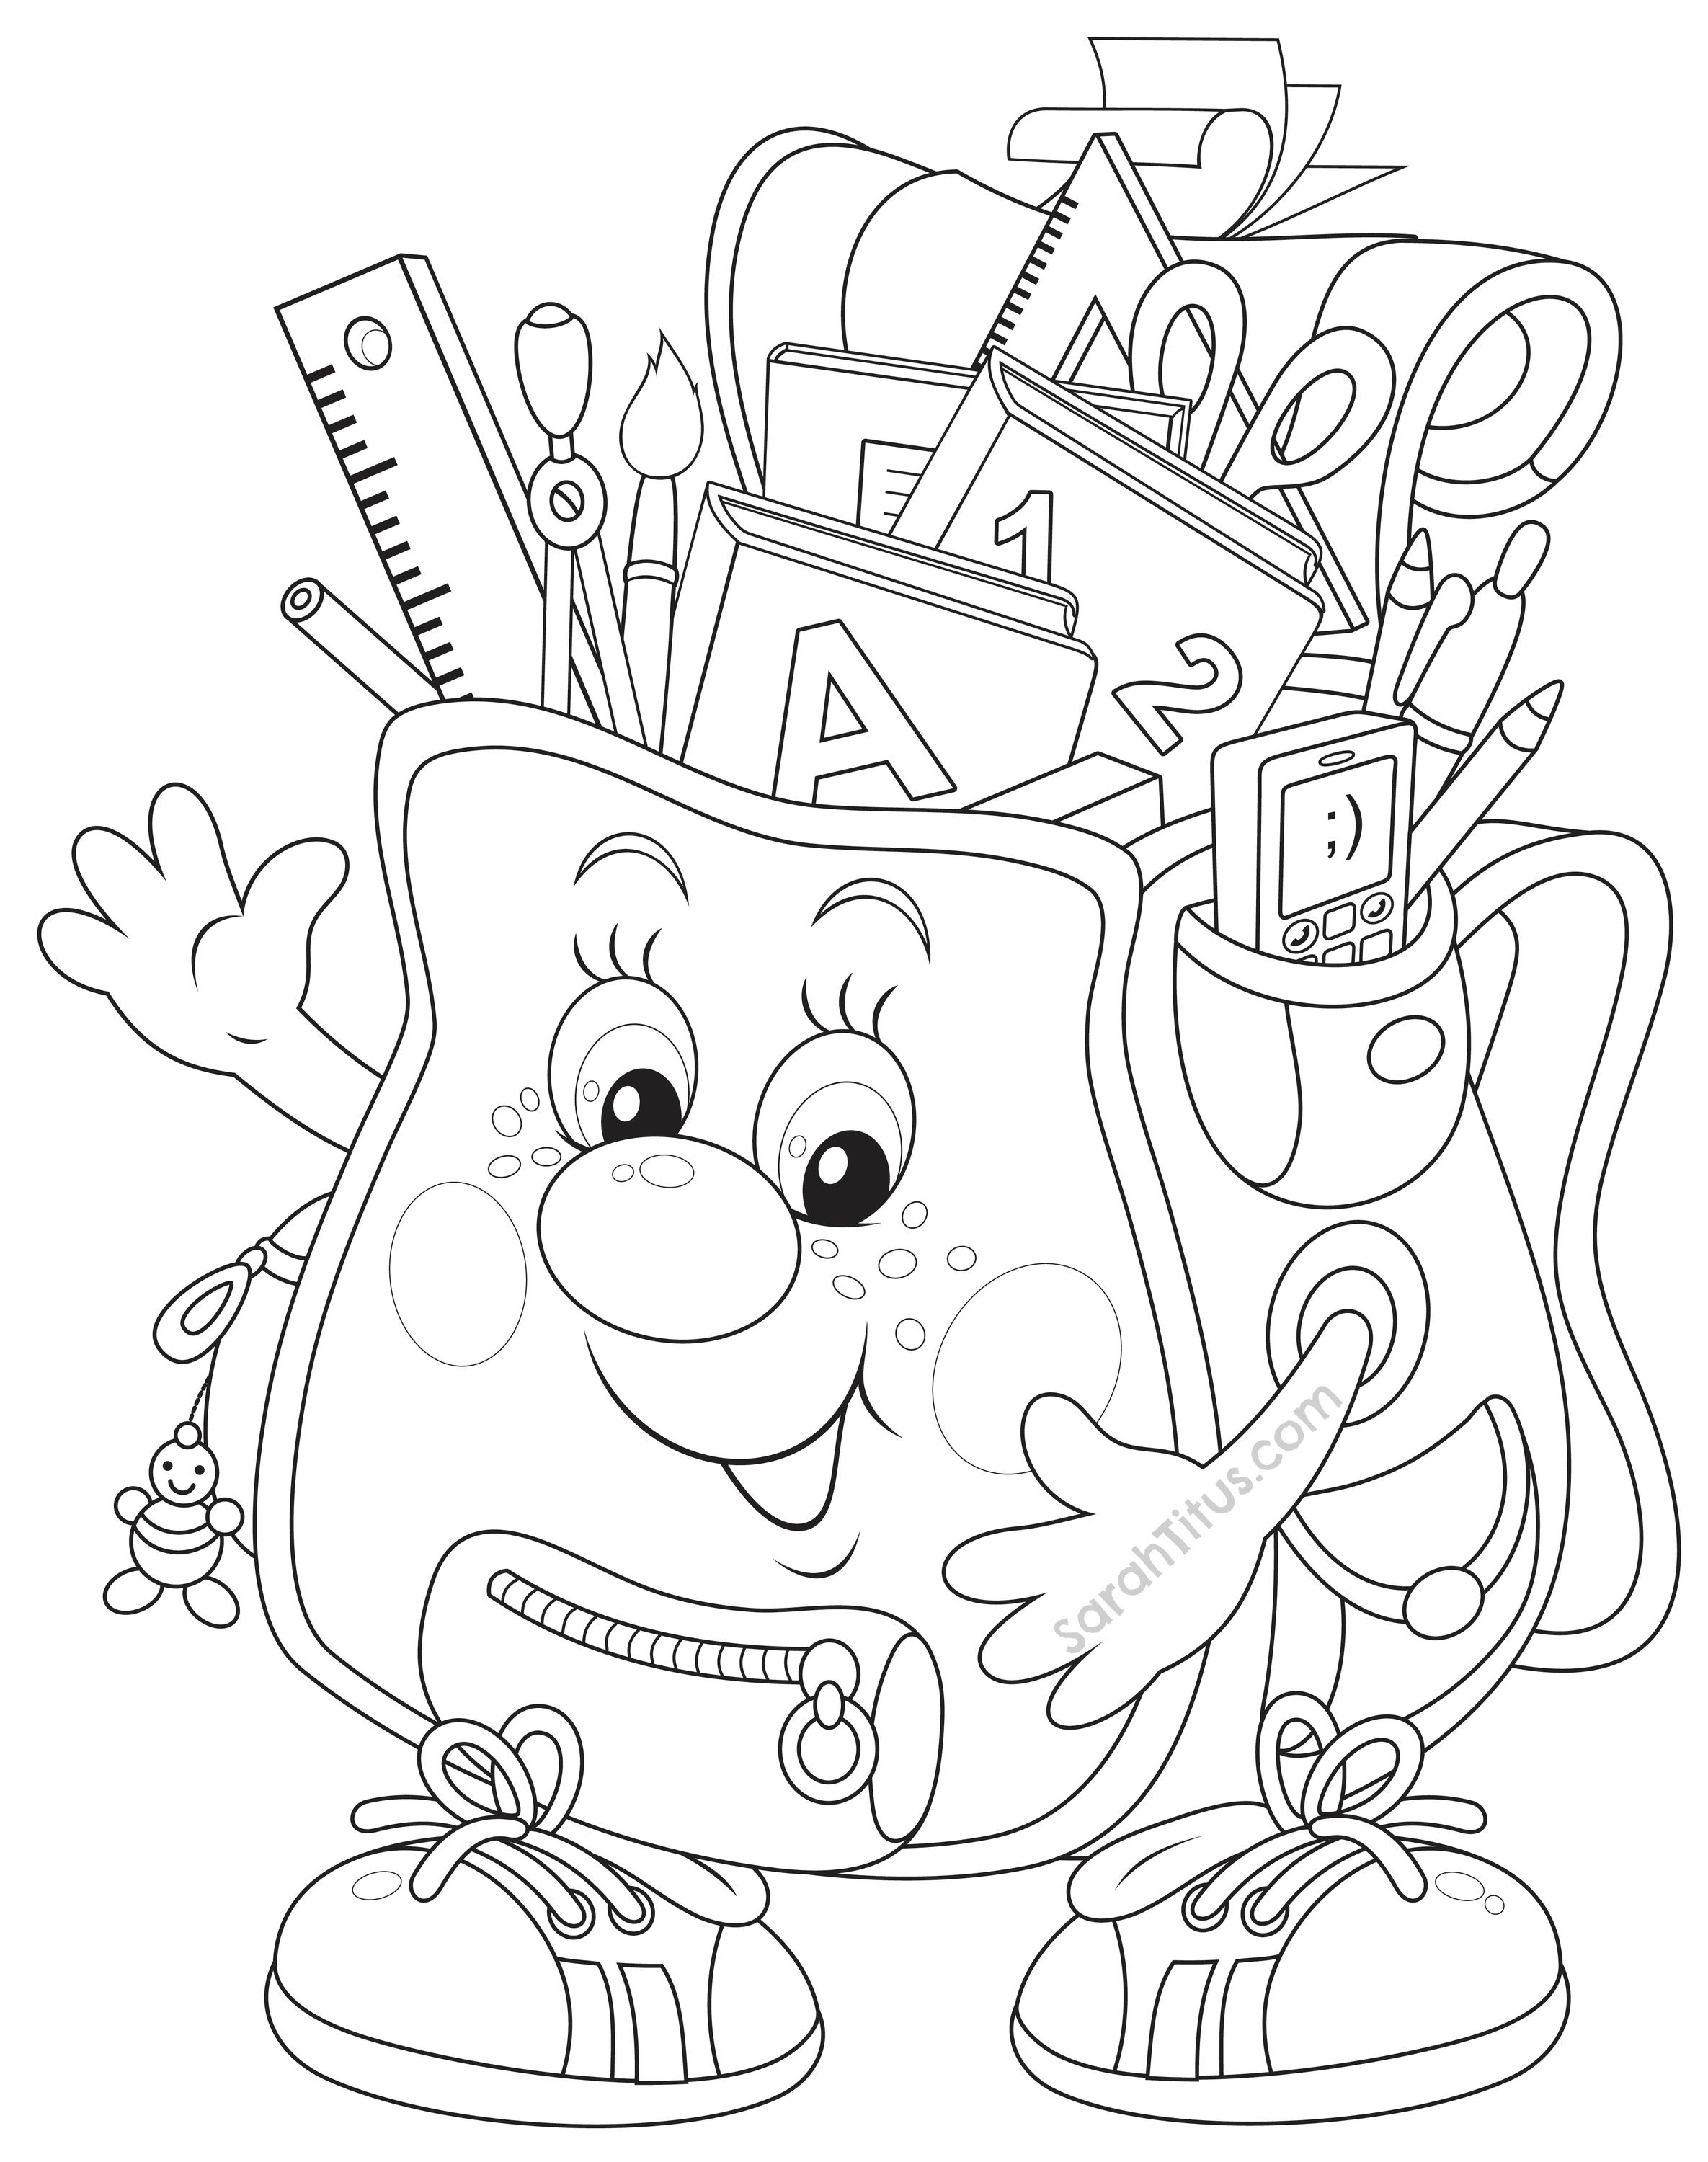 Back To School Coloring Pages Con Imagenes Libro De Colores